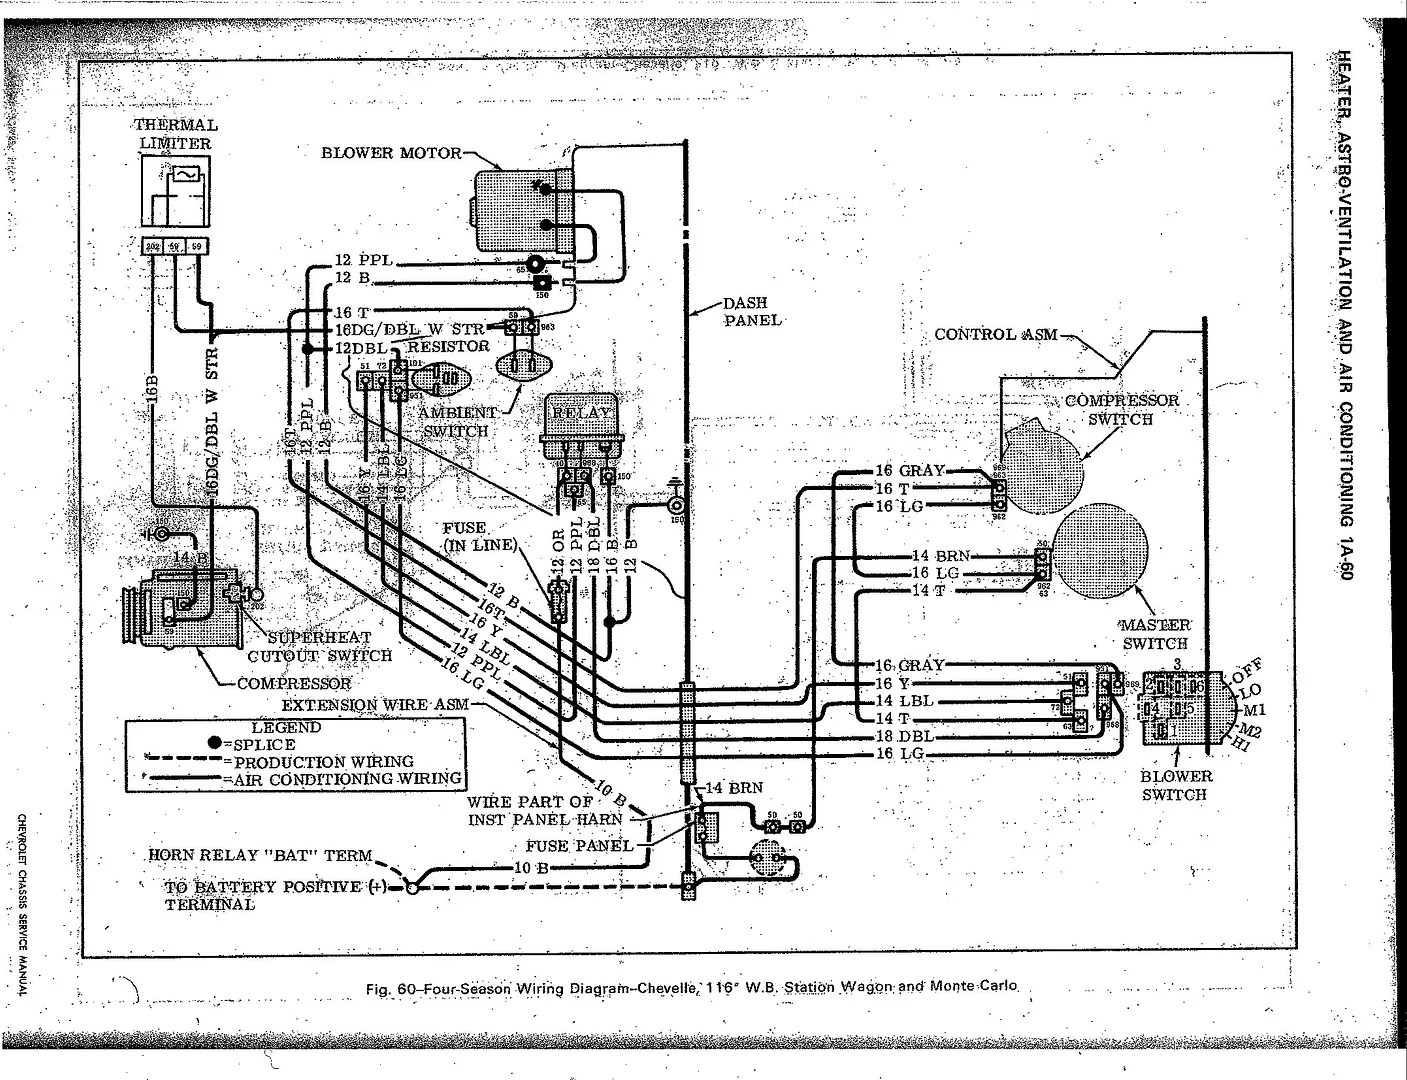 1972 chevelle ac wiring diagram generac 100 amp automatic transfer switch blower motor 72 39